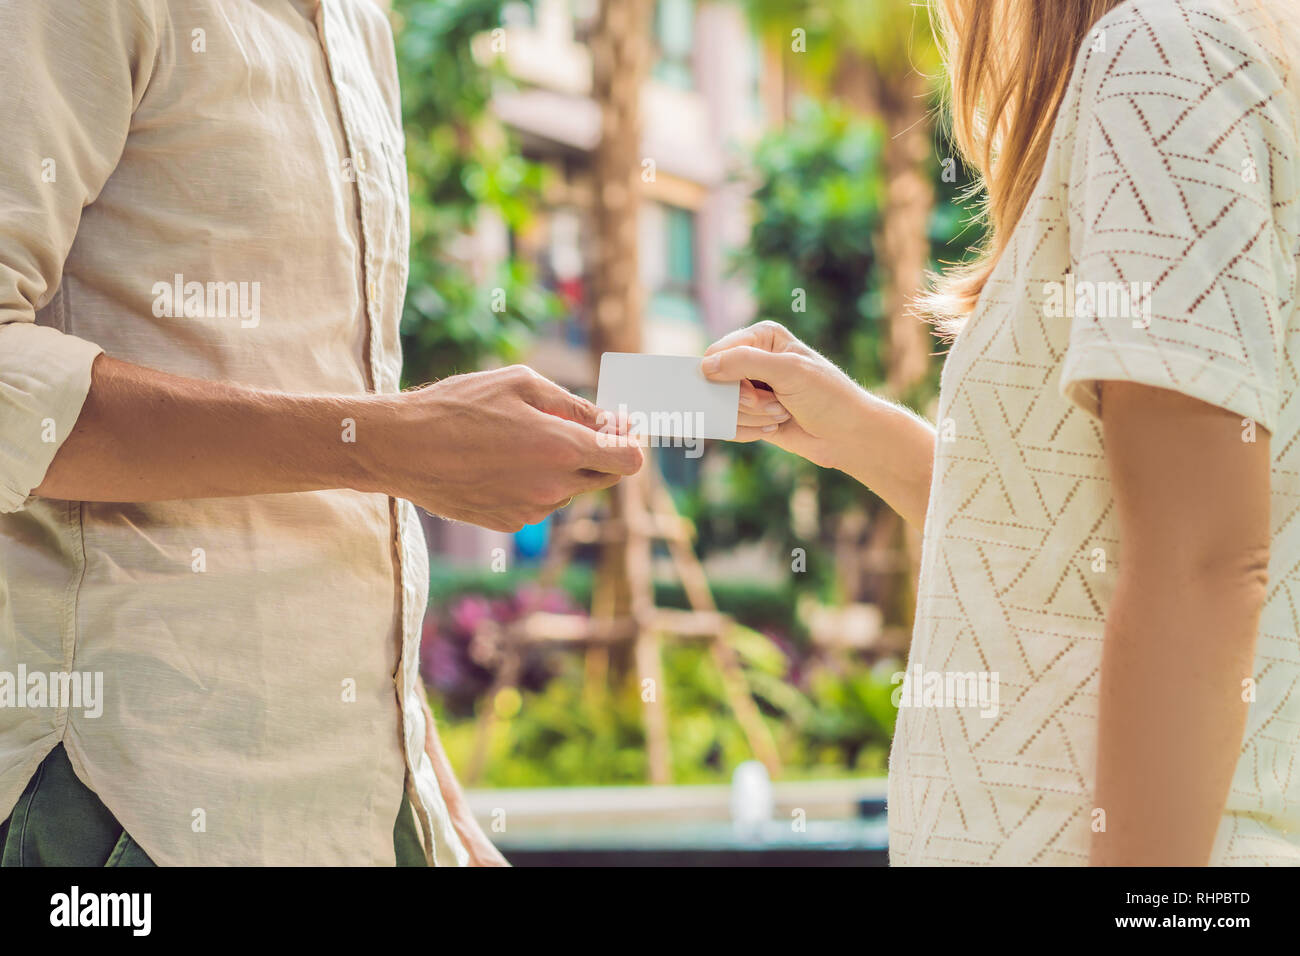 A woman gives to a man security key card or business card - Stock Image